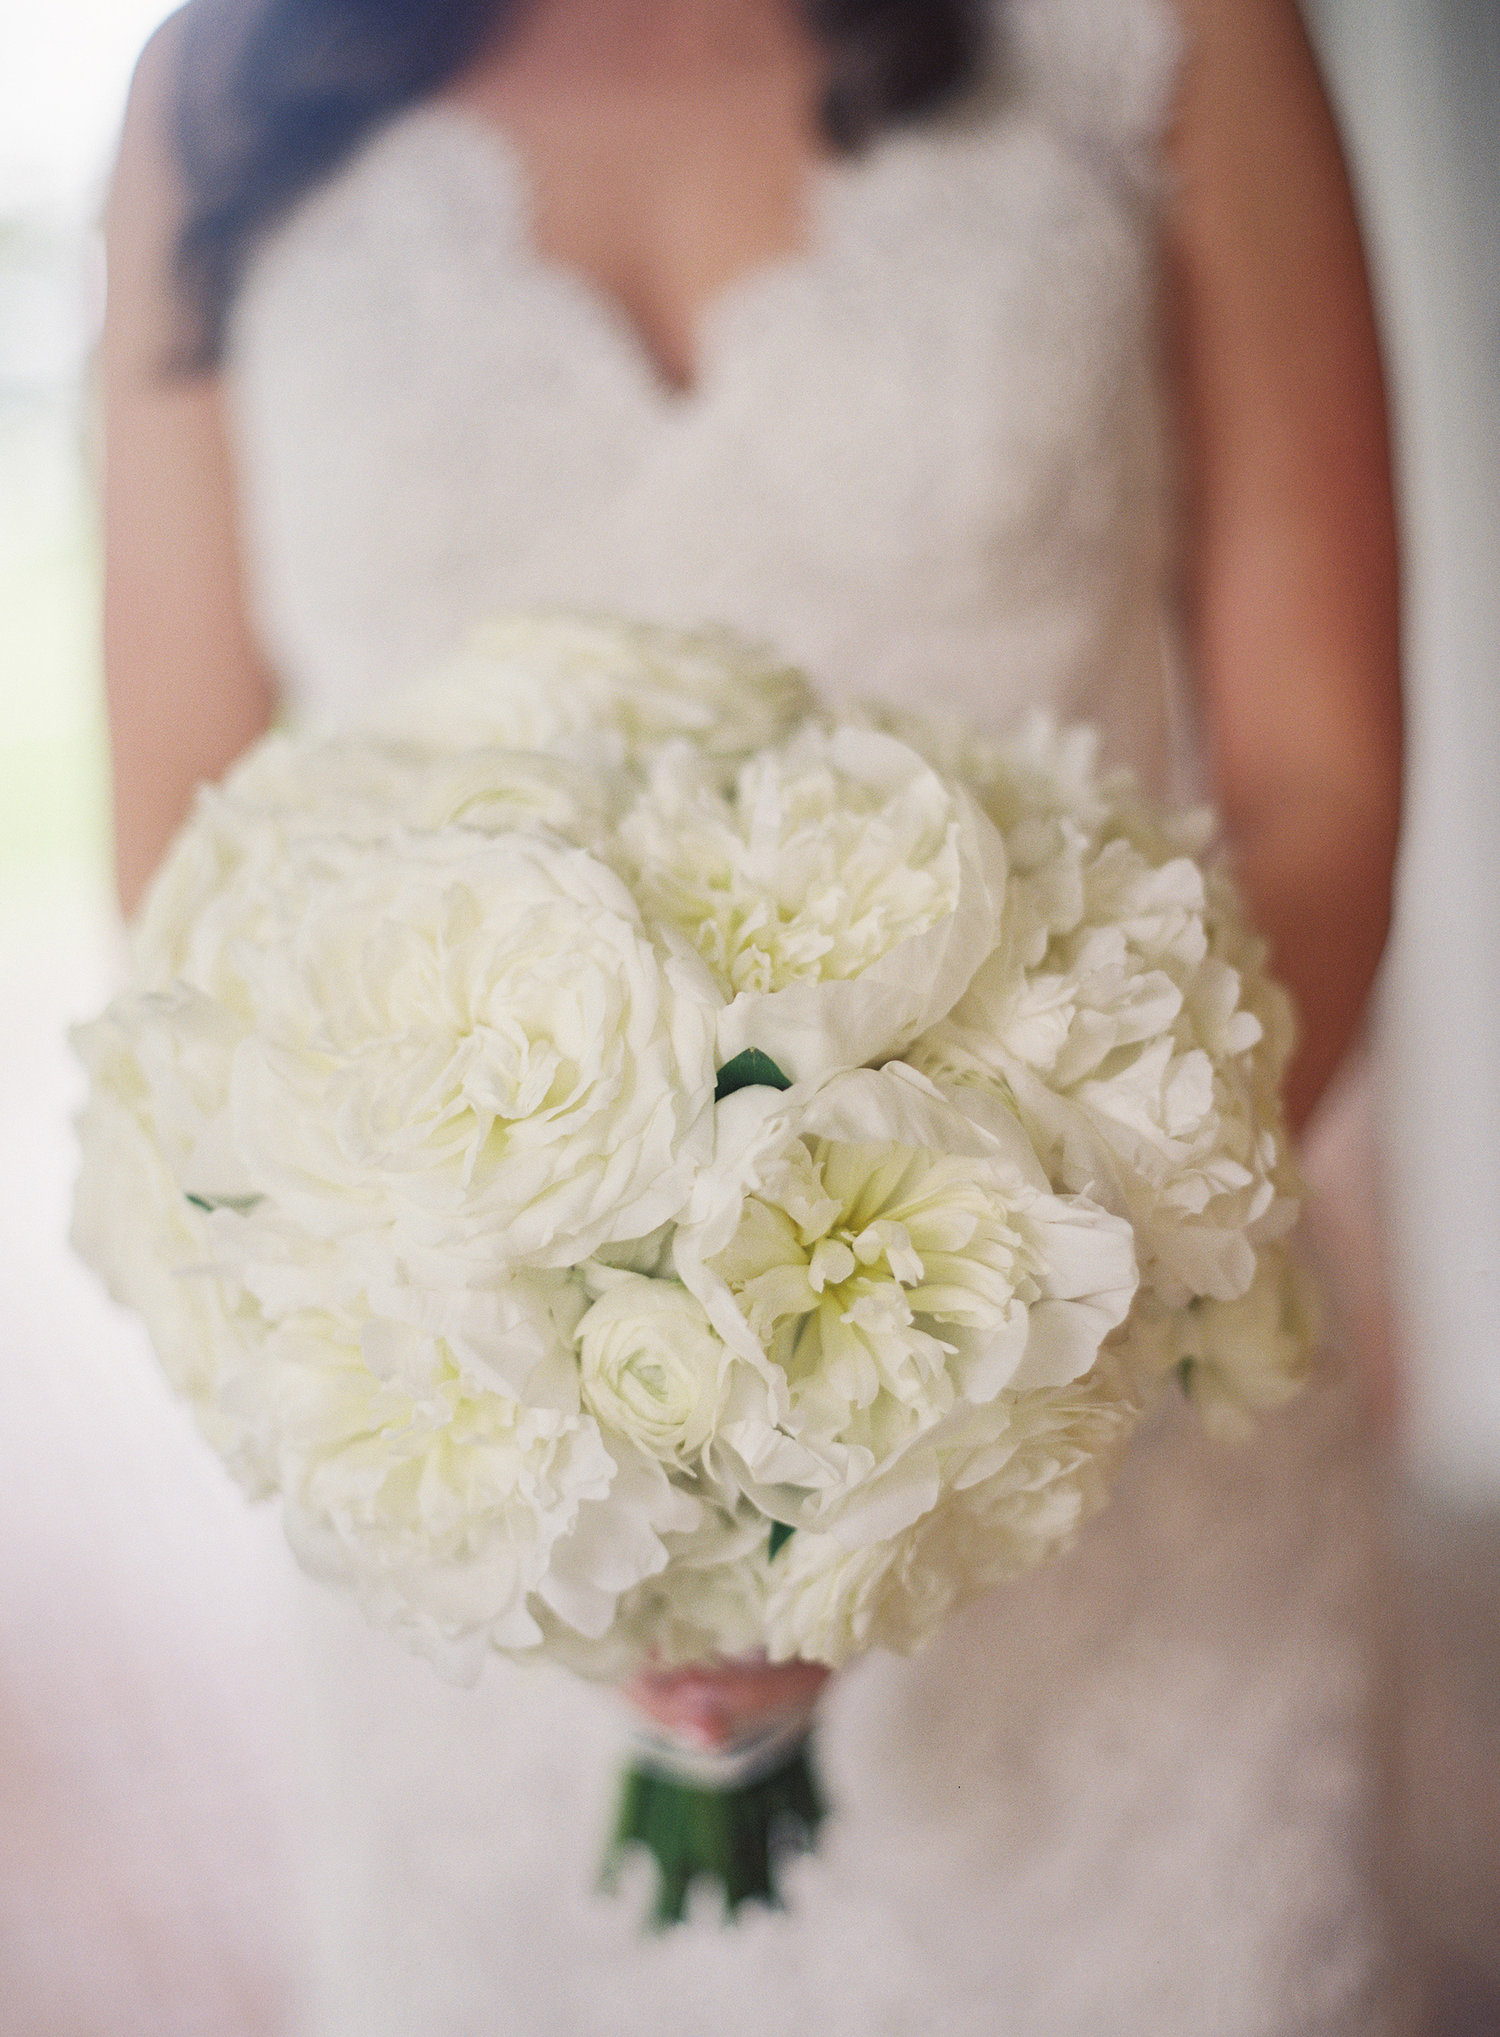 Brides white bouquet with greenery